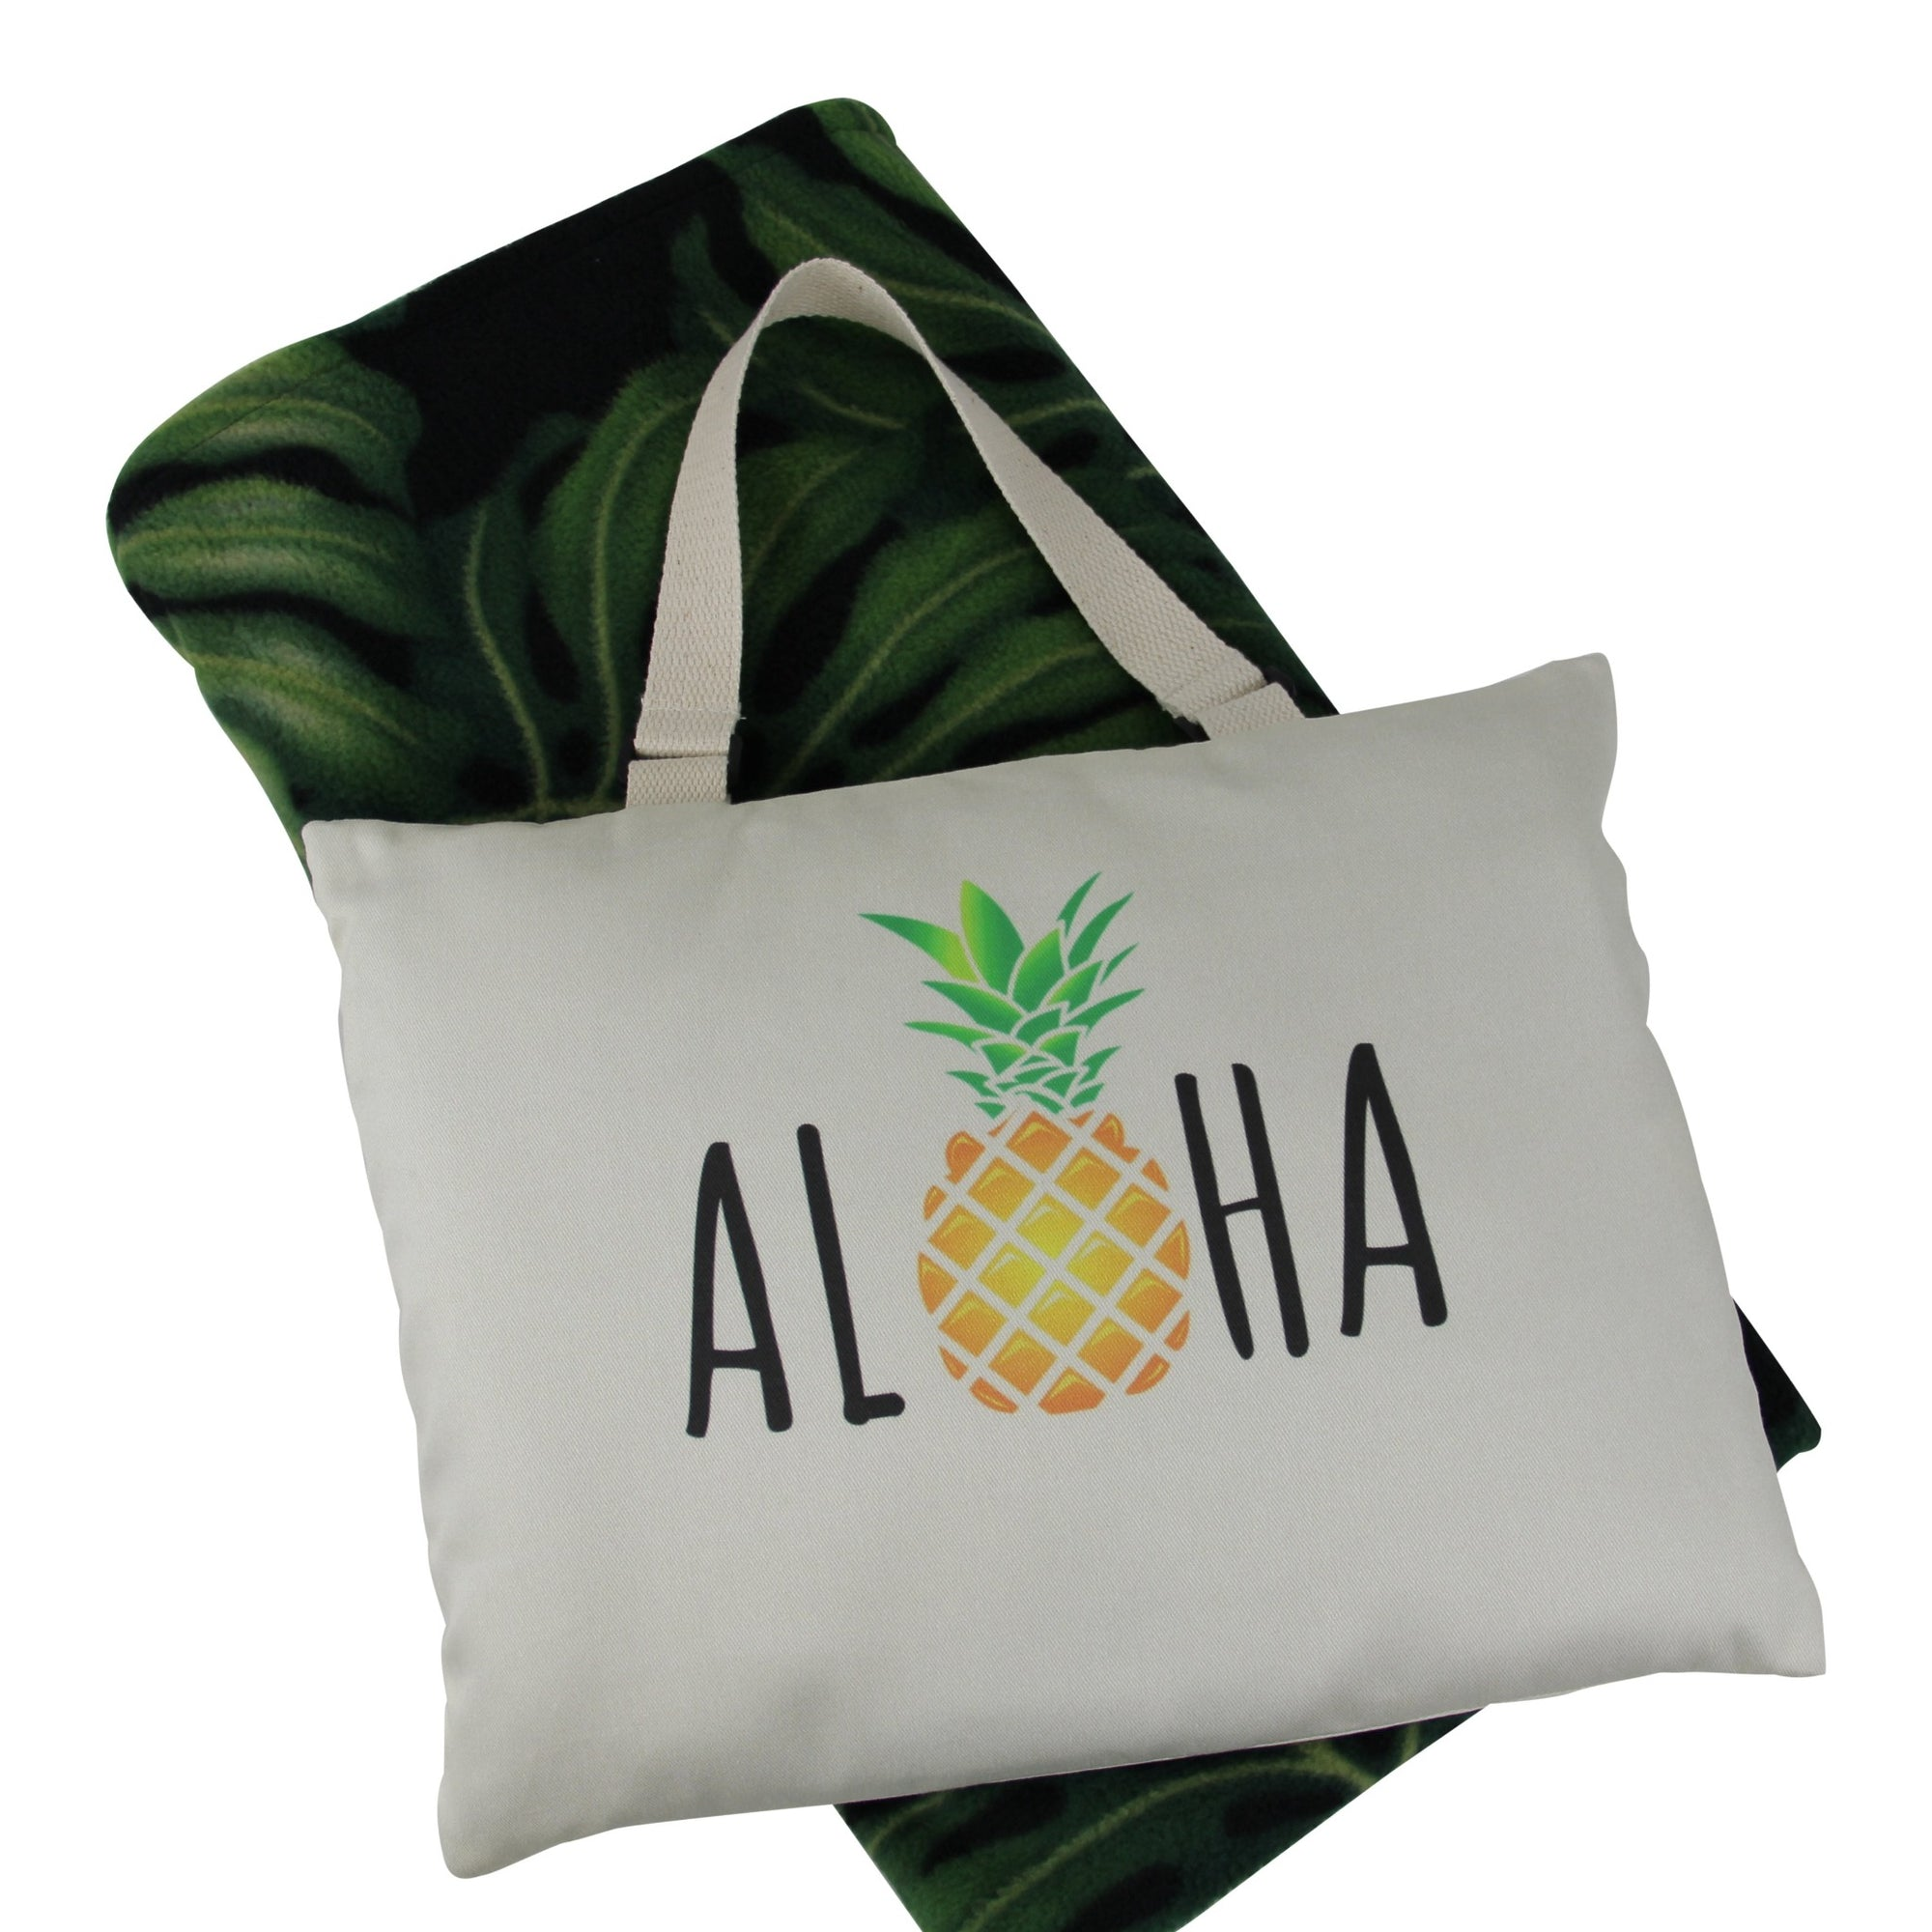 Hali'i travel blanket set-Aloha Pineapple Caps